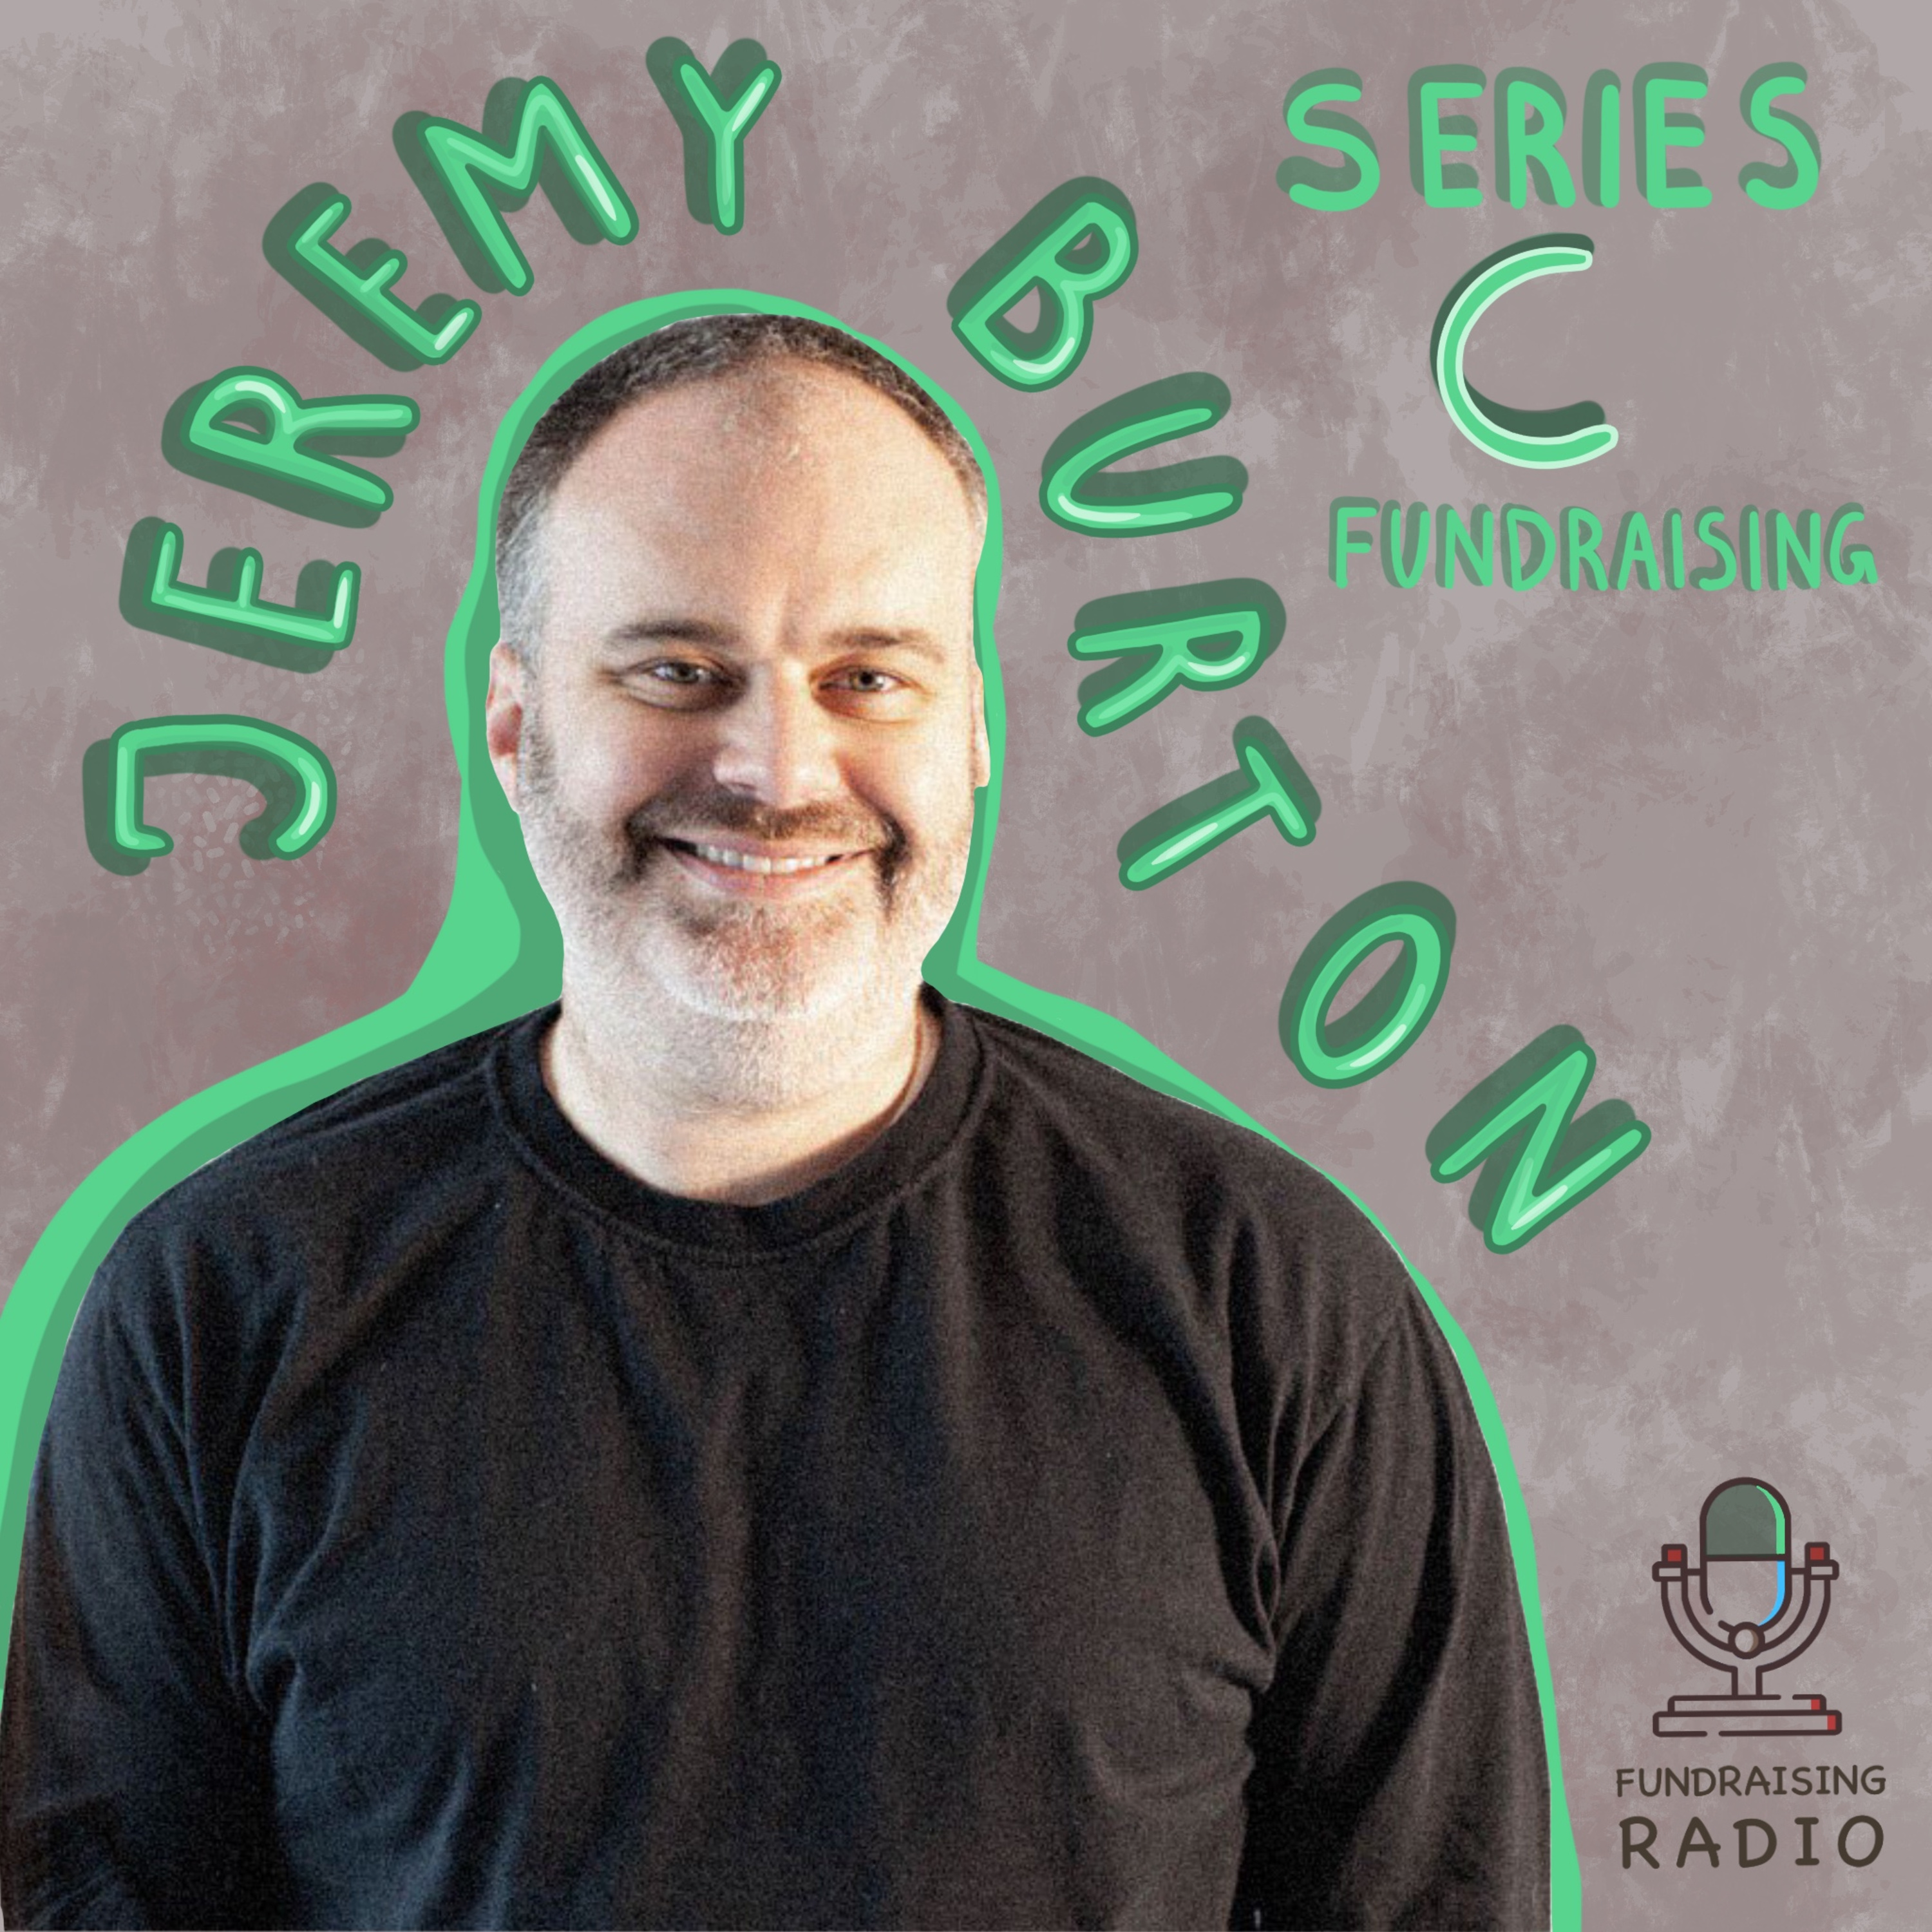 Series C raising and spinning out of Coca-Cola's incubator - Jeremy Burton on the fundraising for Wonolo.